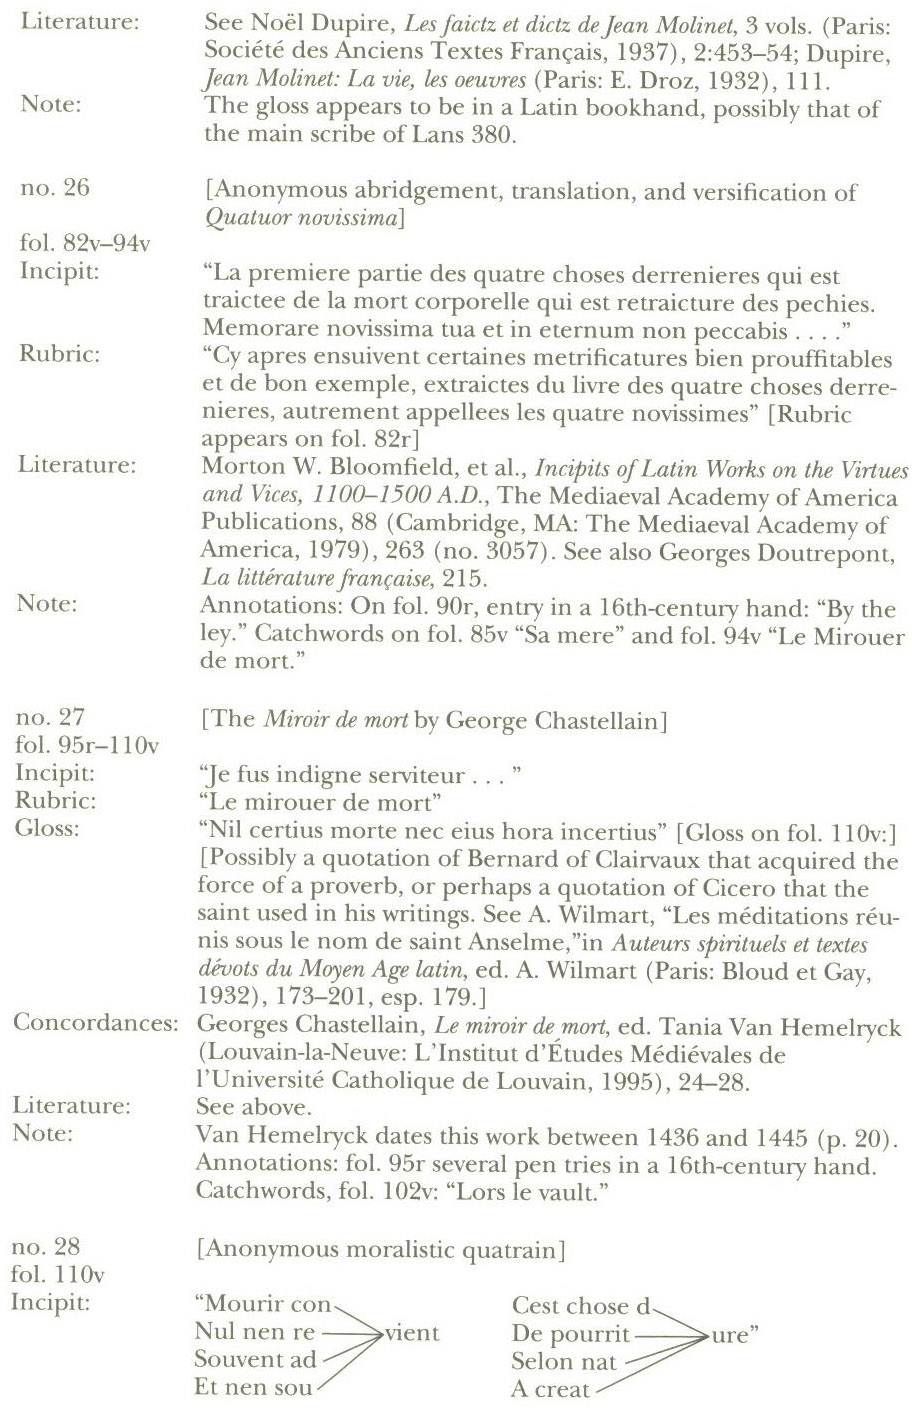 Guide Des Bonnes Manieres Rothschild gale academic onefile - document - an introduction to